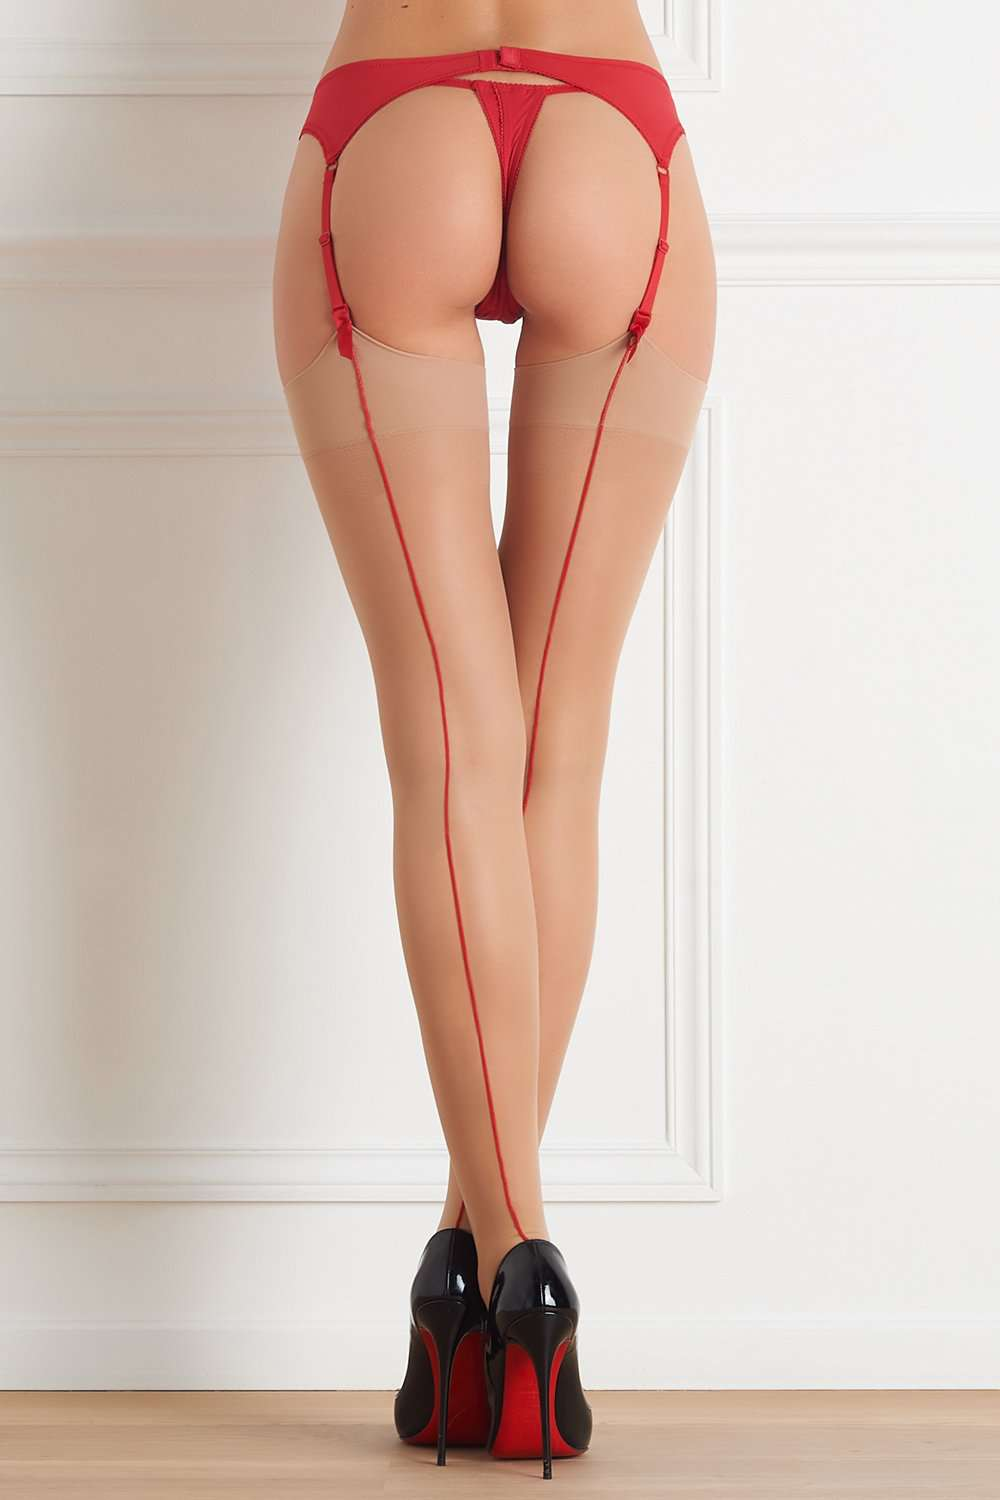 Maison Close Back Seamed Stockings - Naughty Knickers